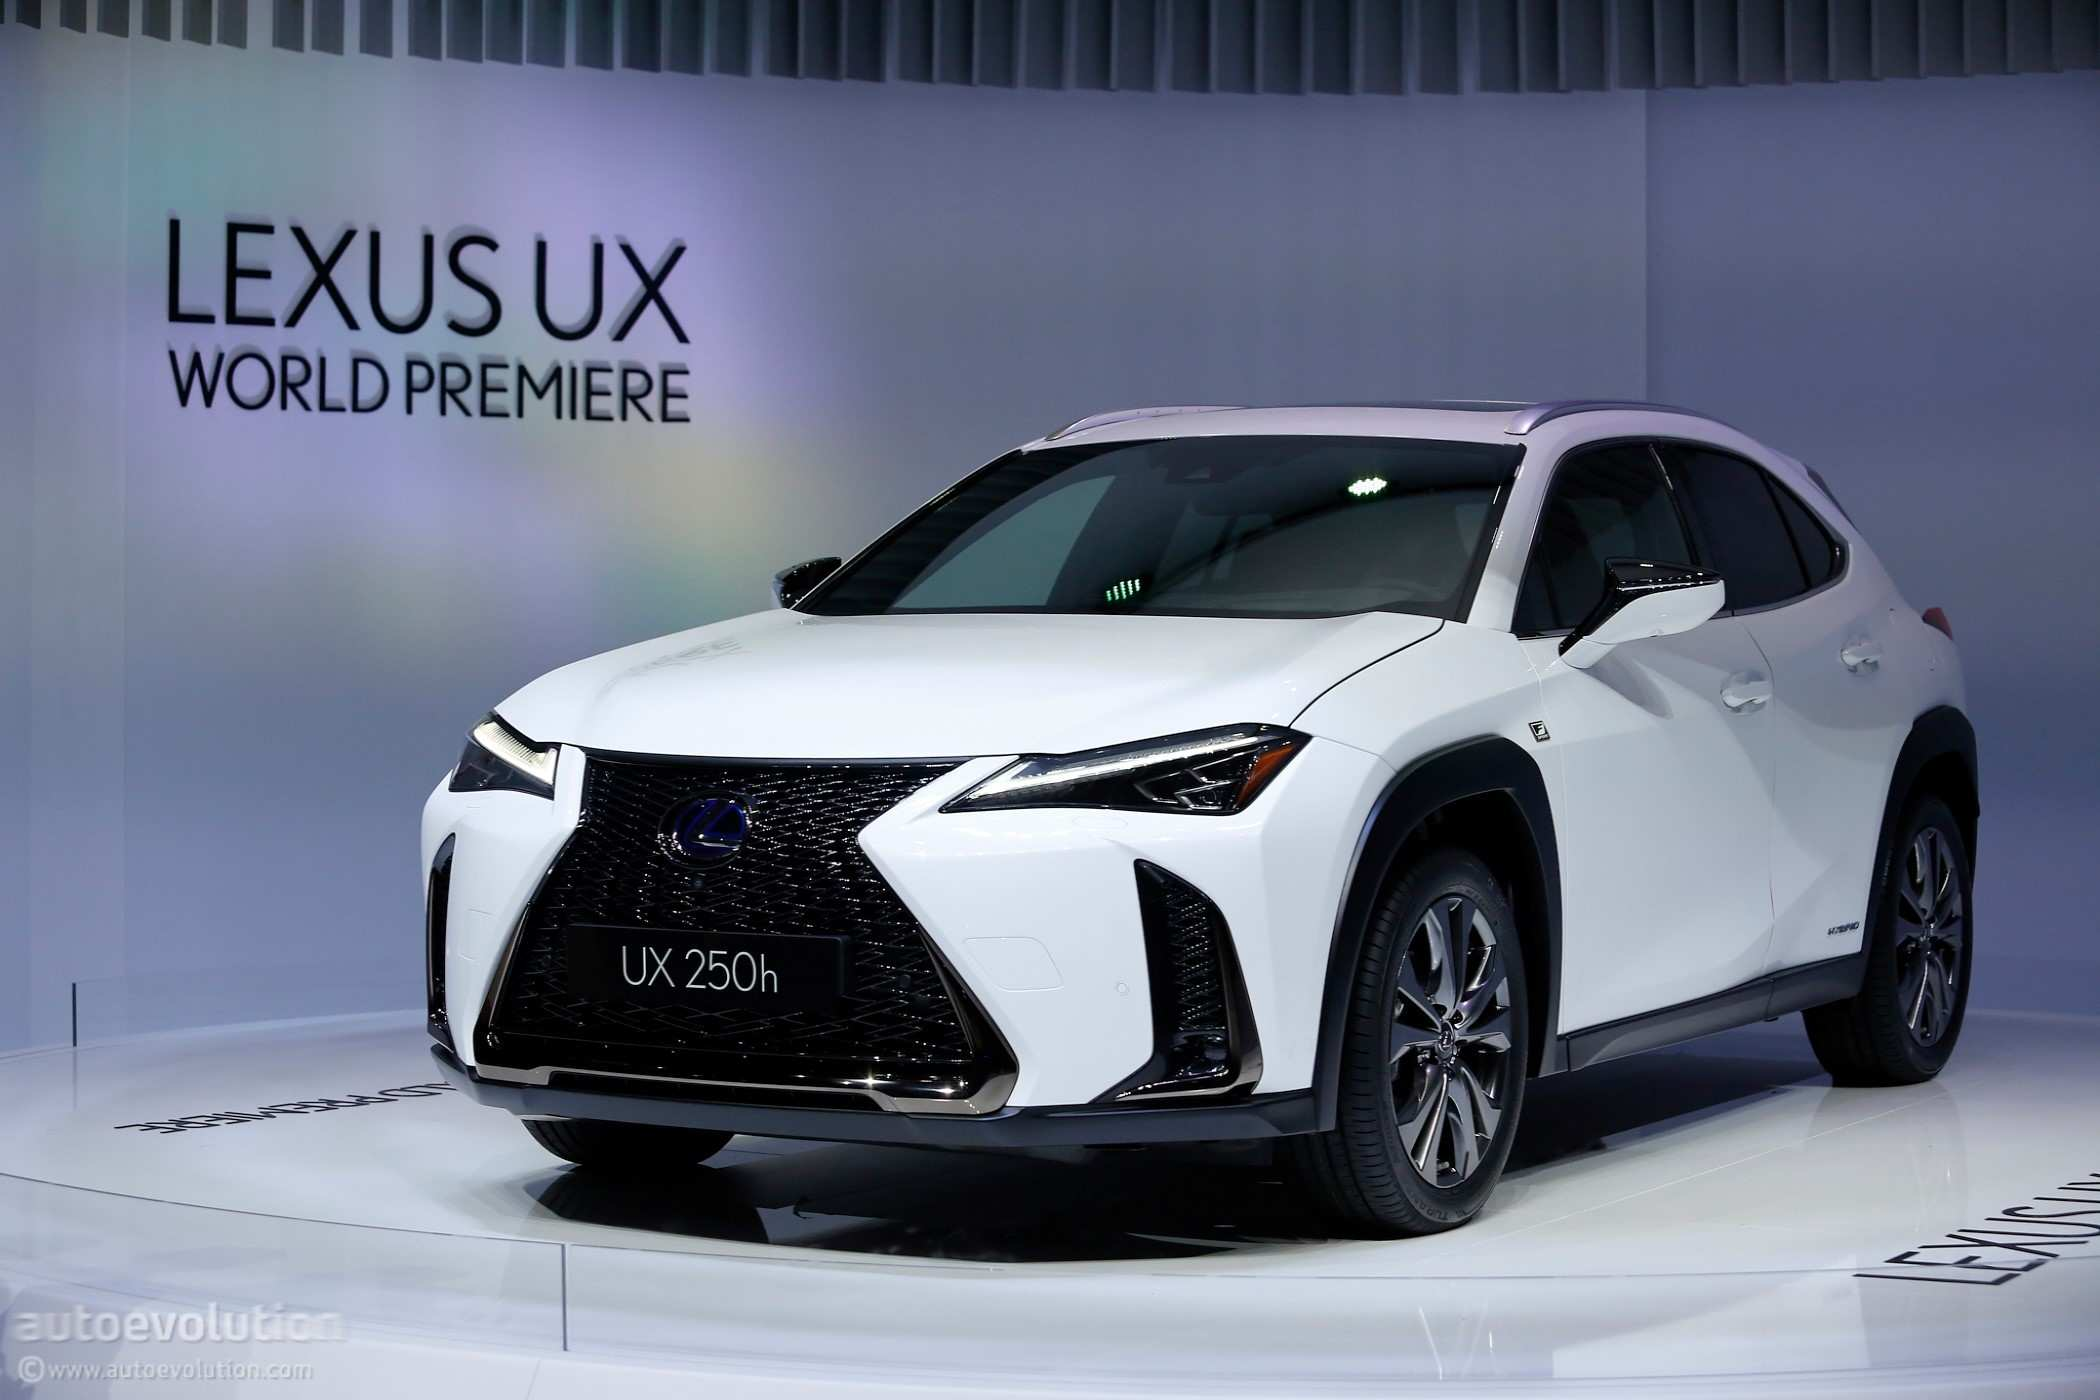 36 New Lexus Models 2020 Pictures with Lexus Models 2020